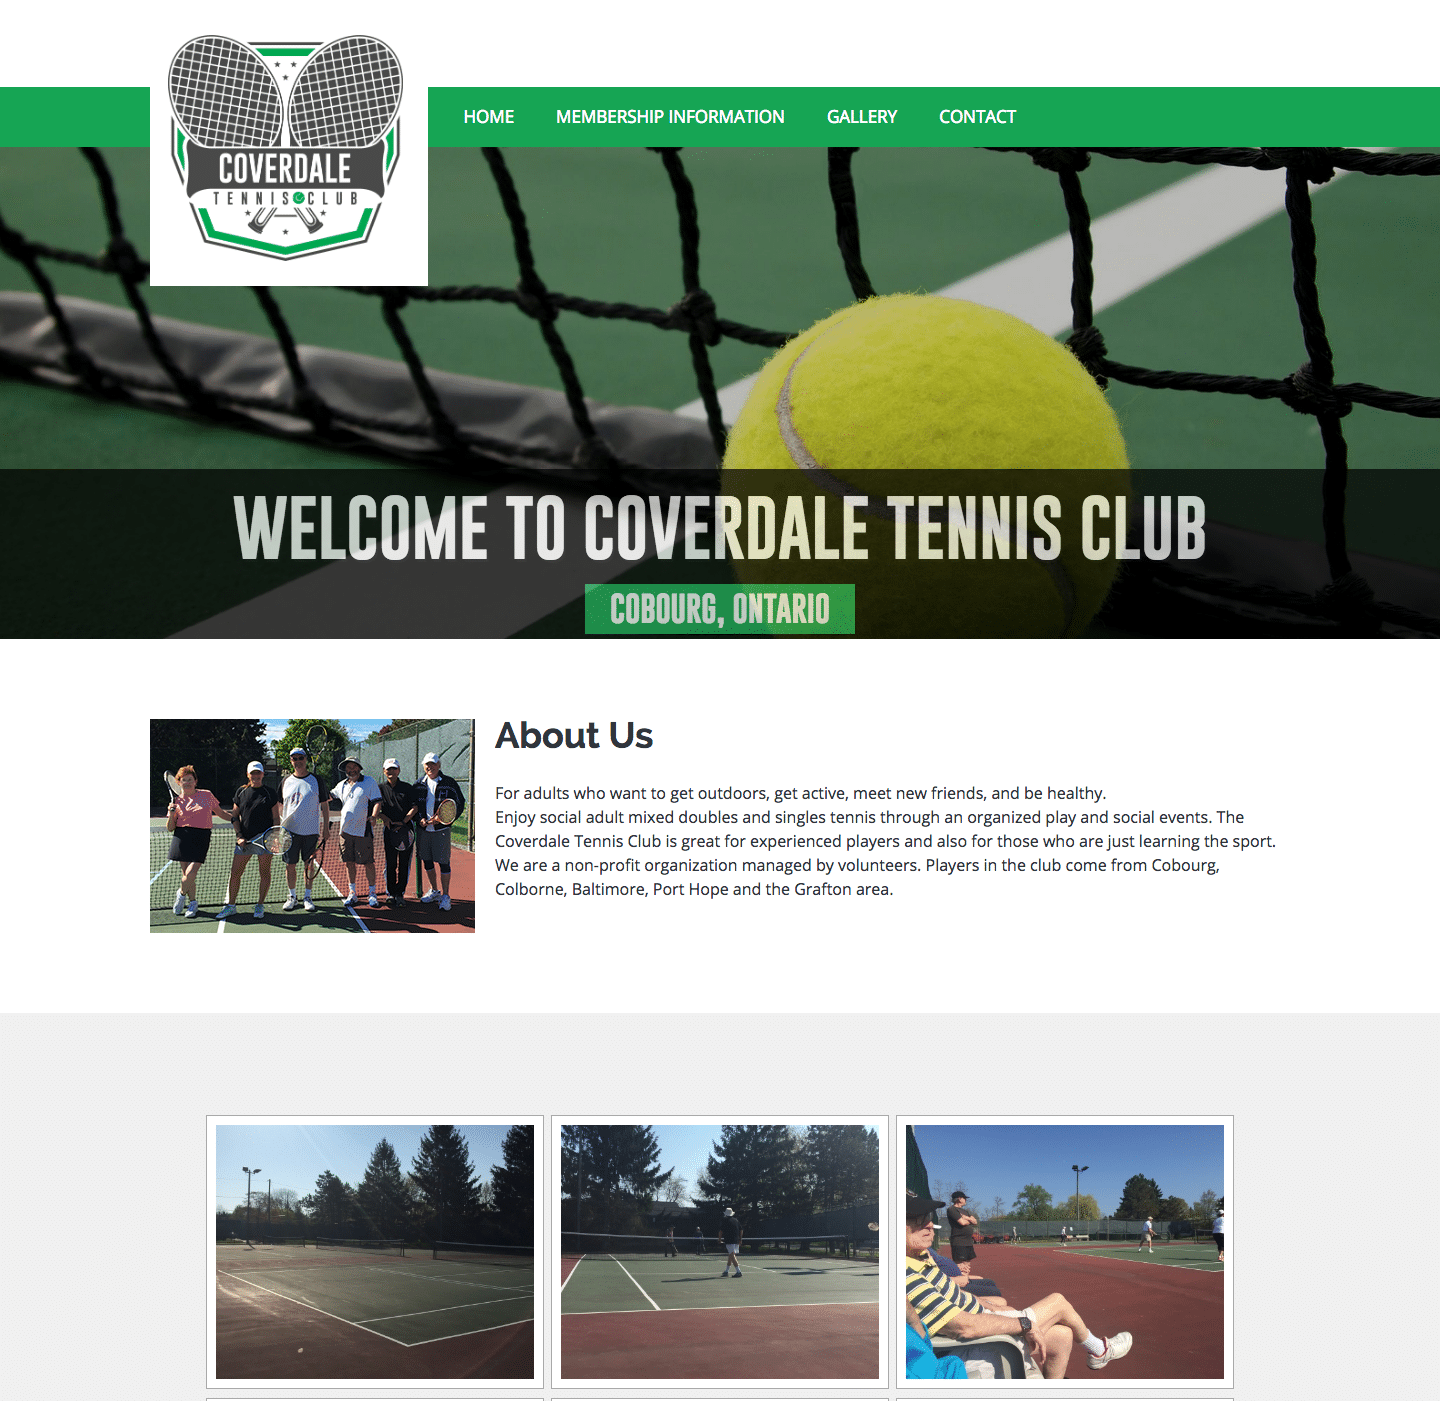 Coverdale Tennis Club